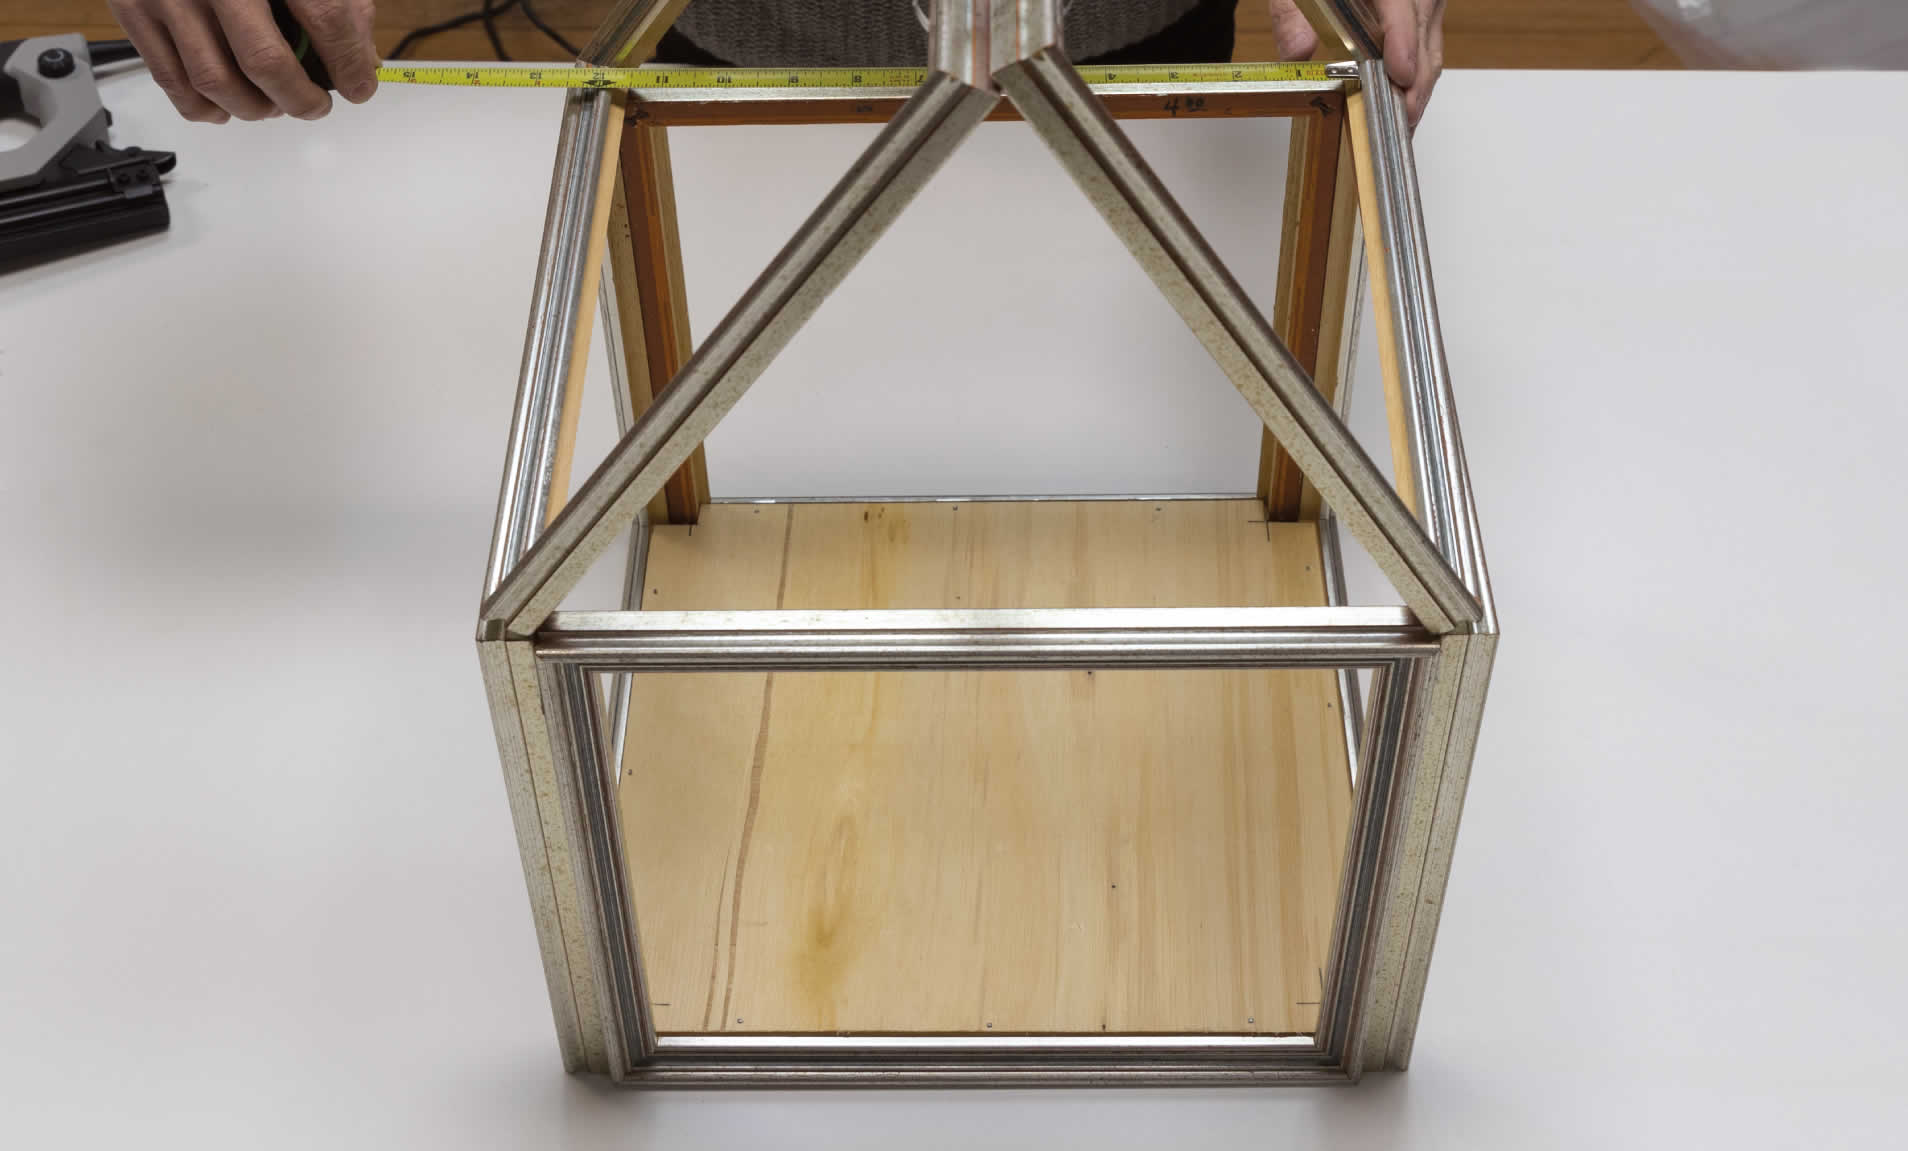 Step 4b-mini indoor greenhouse-Set on top of the cube and measure the distance between the frames.